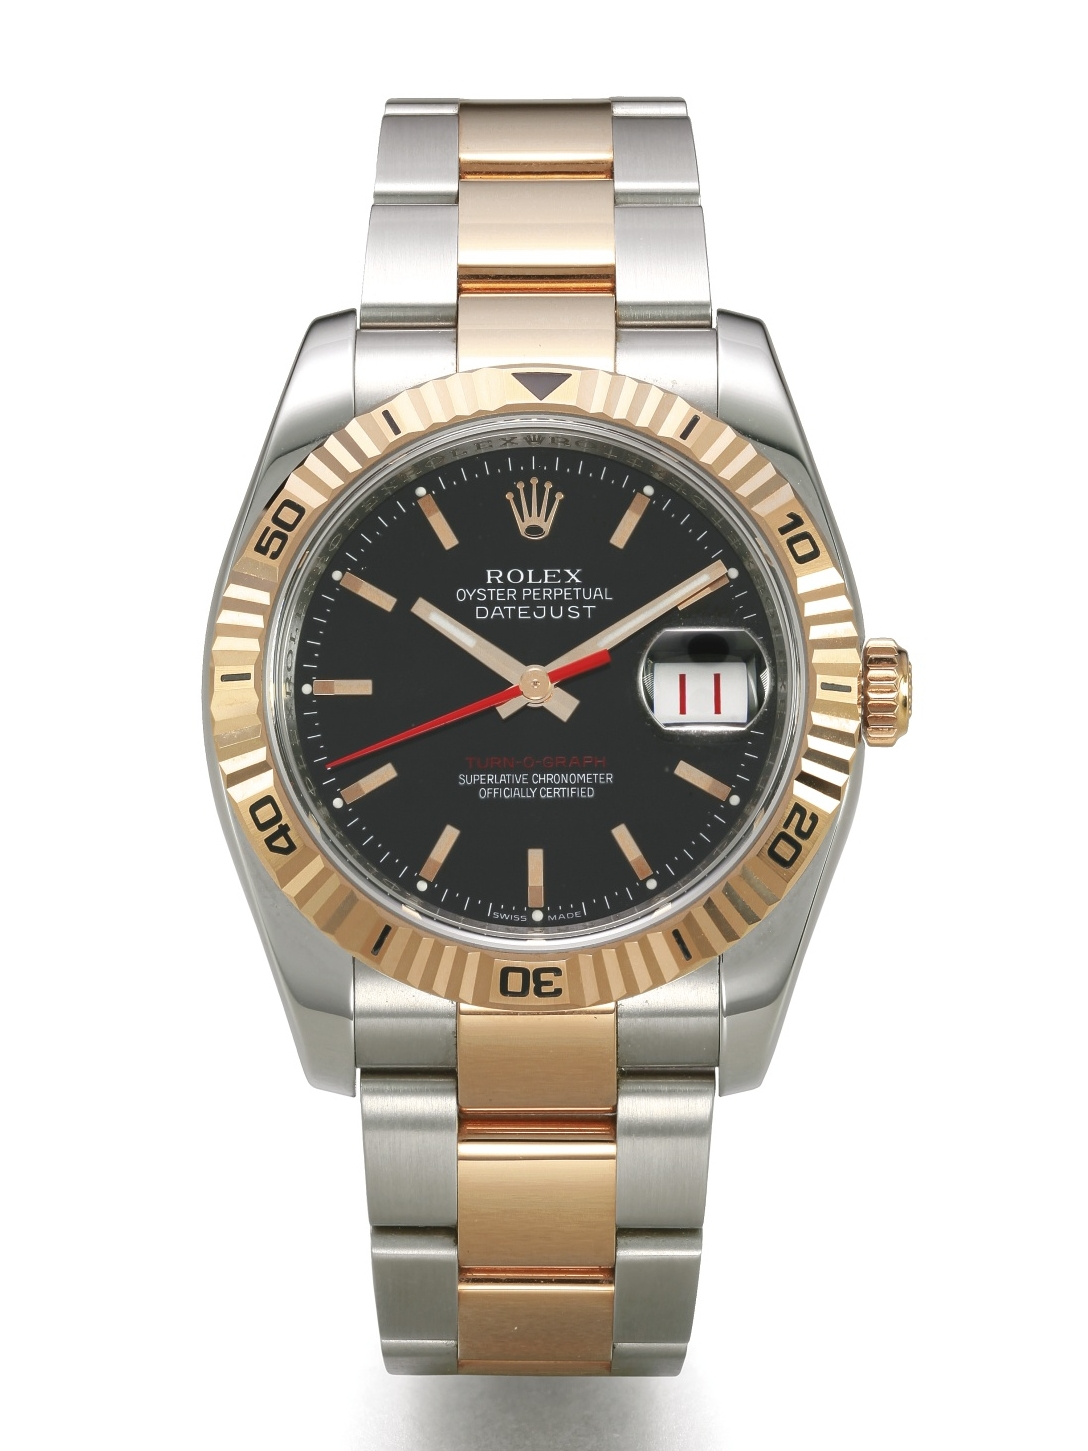 Rolex Datejust Turn-o-graph Ref. 116263.